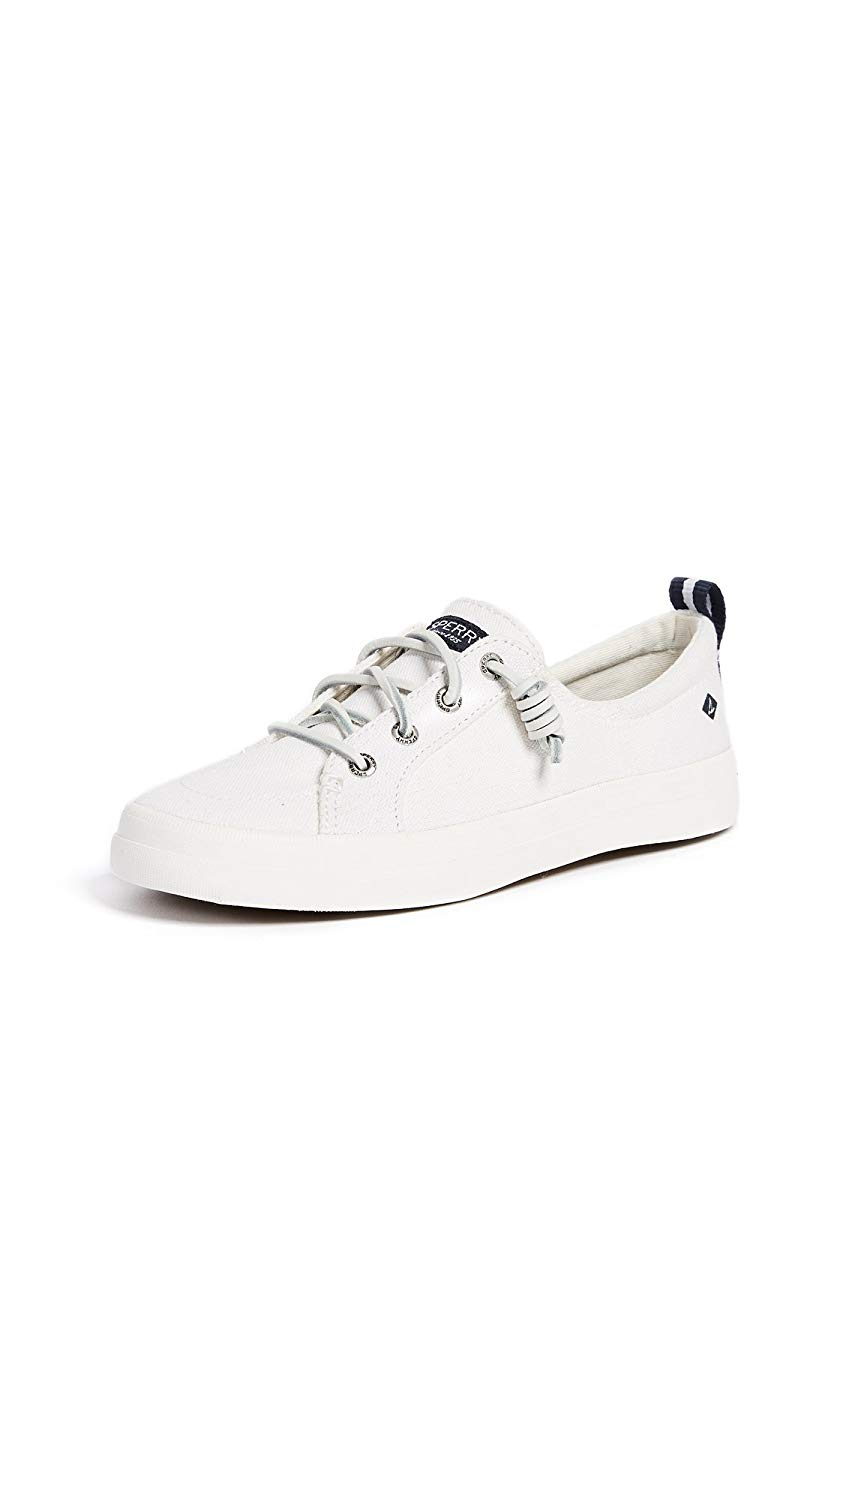 f3748db102 Get Quotations · Sperry Women s